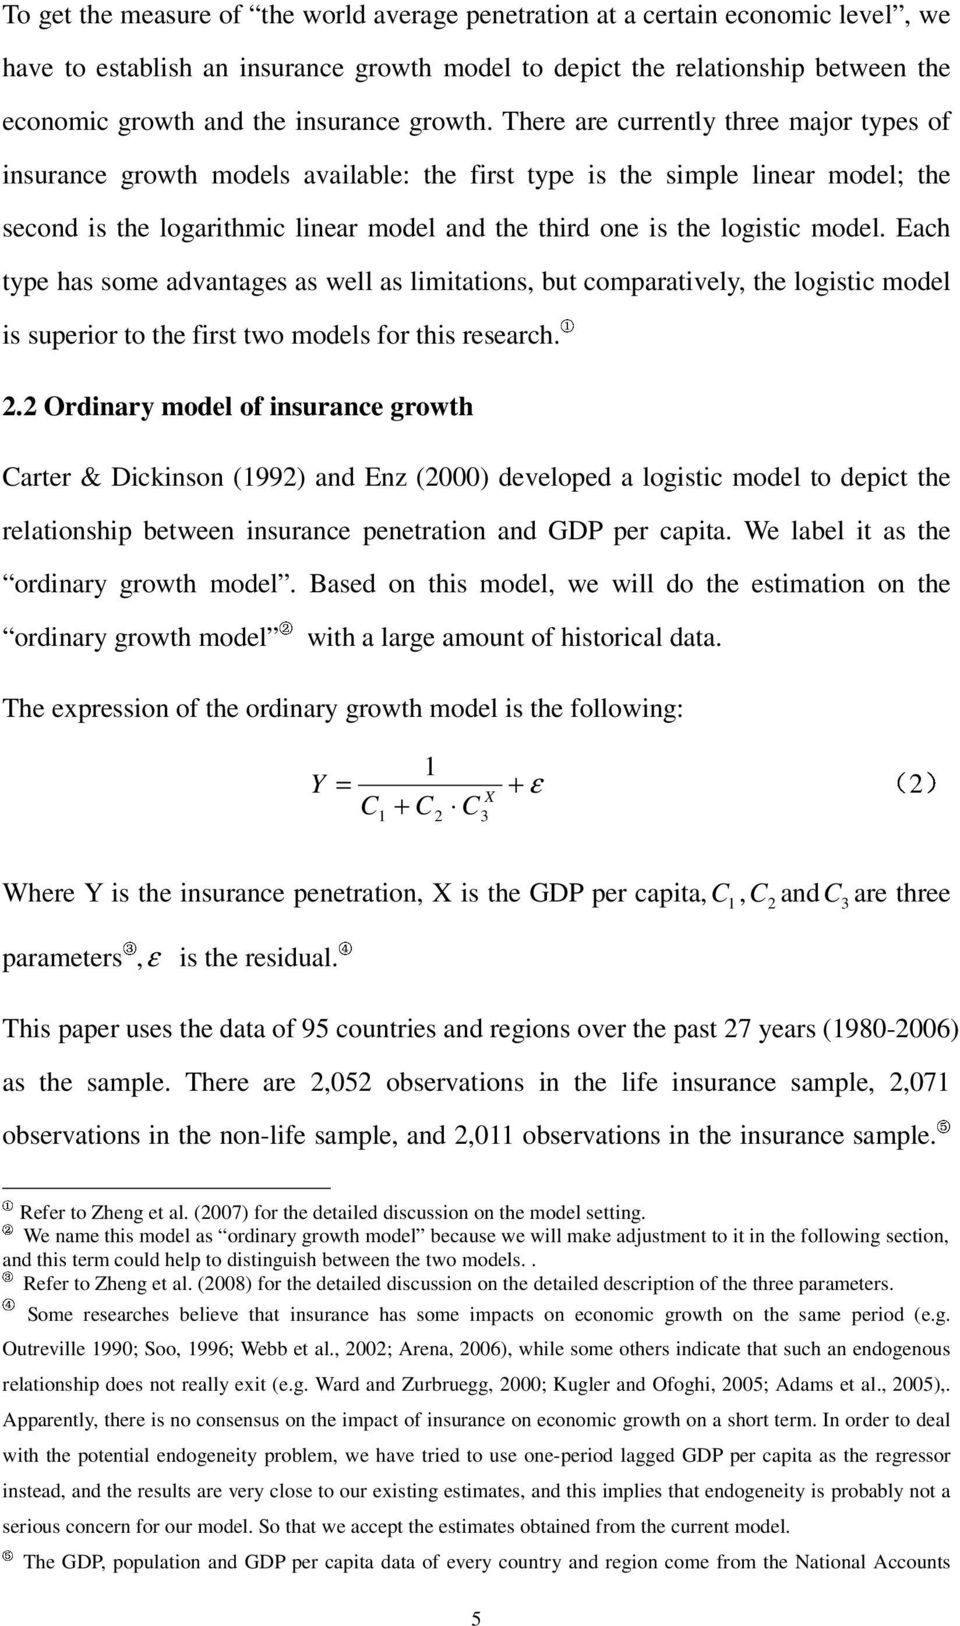 There are currently three major types of insurance growth models available: the first type is the simple linear model; the second is the logarithmic linear model and the third one is the logistic